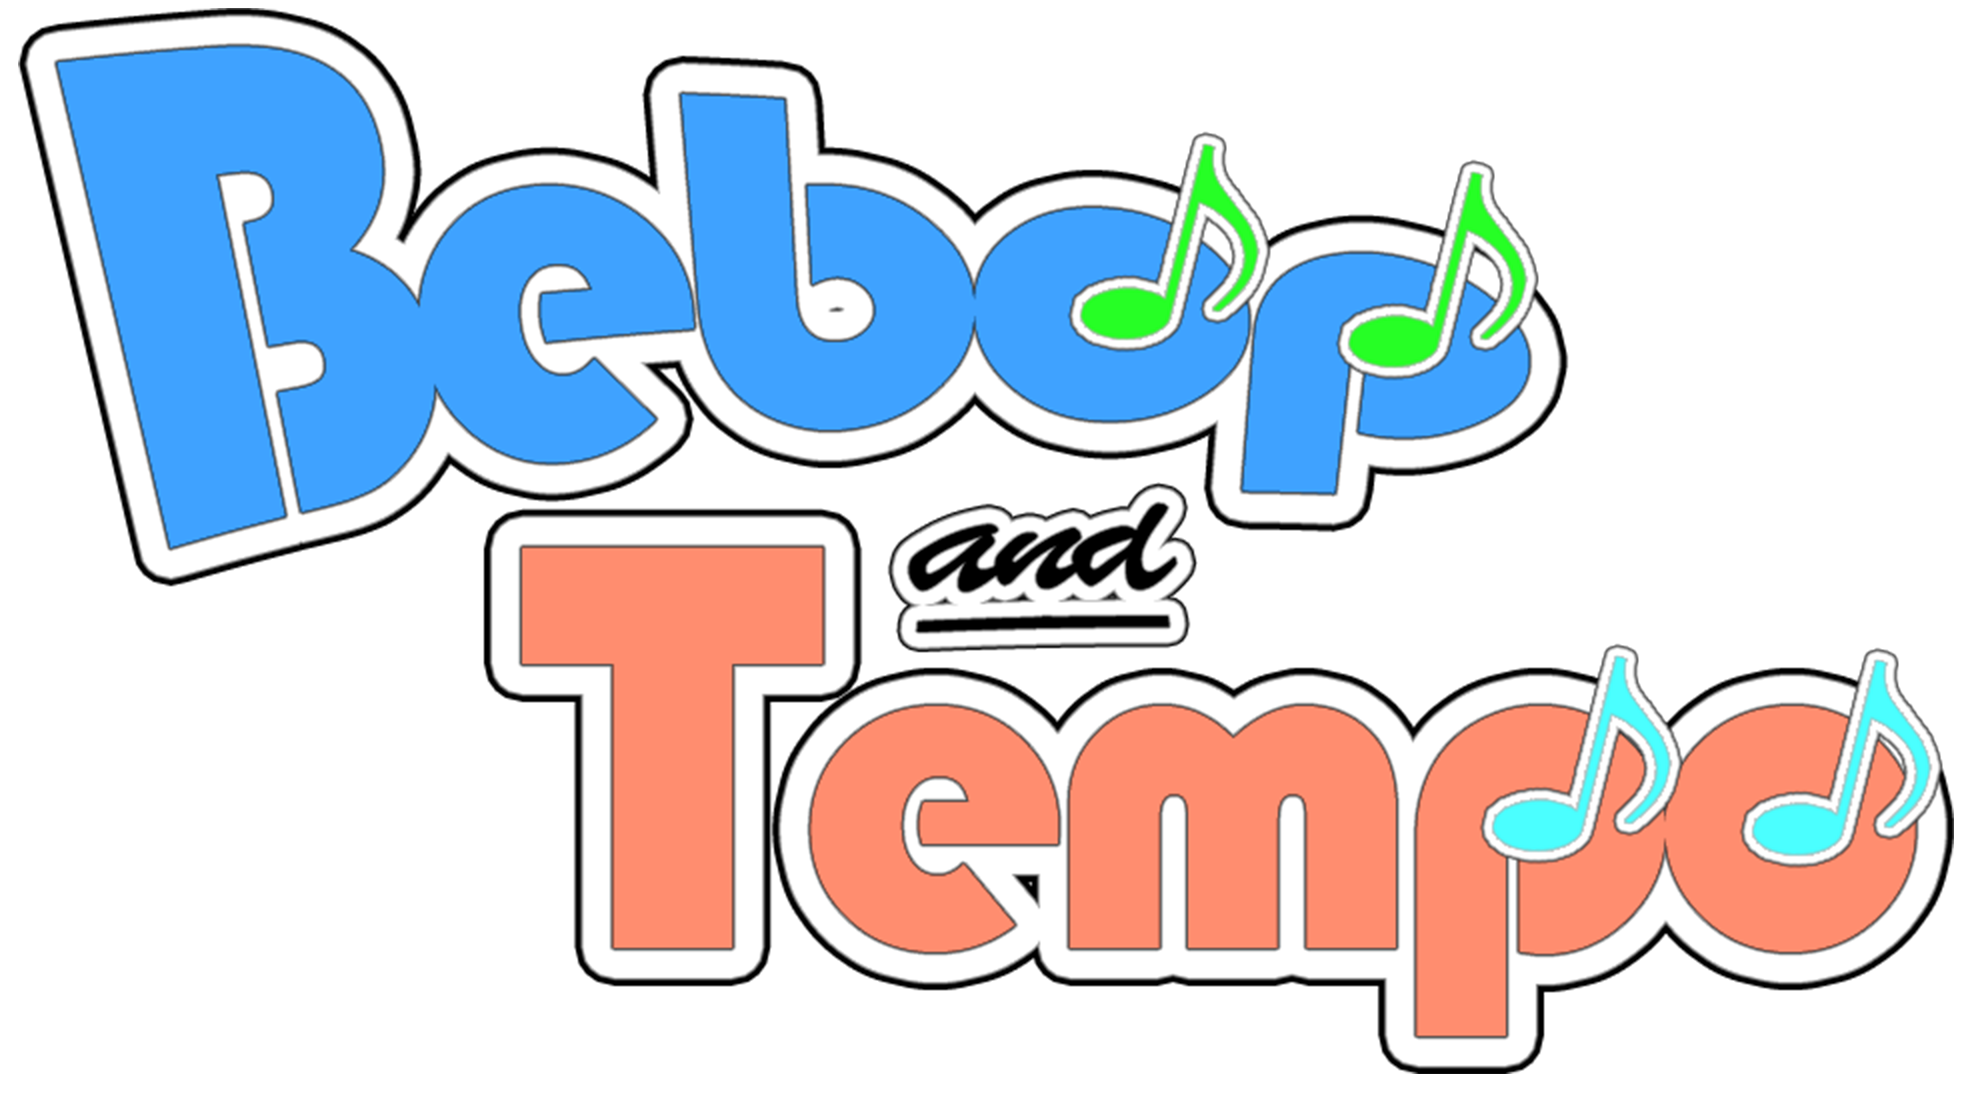 Bebop and Temp Logo